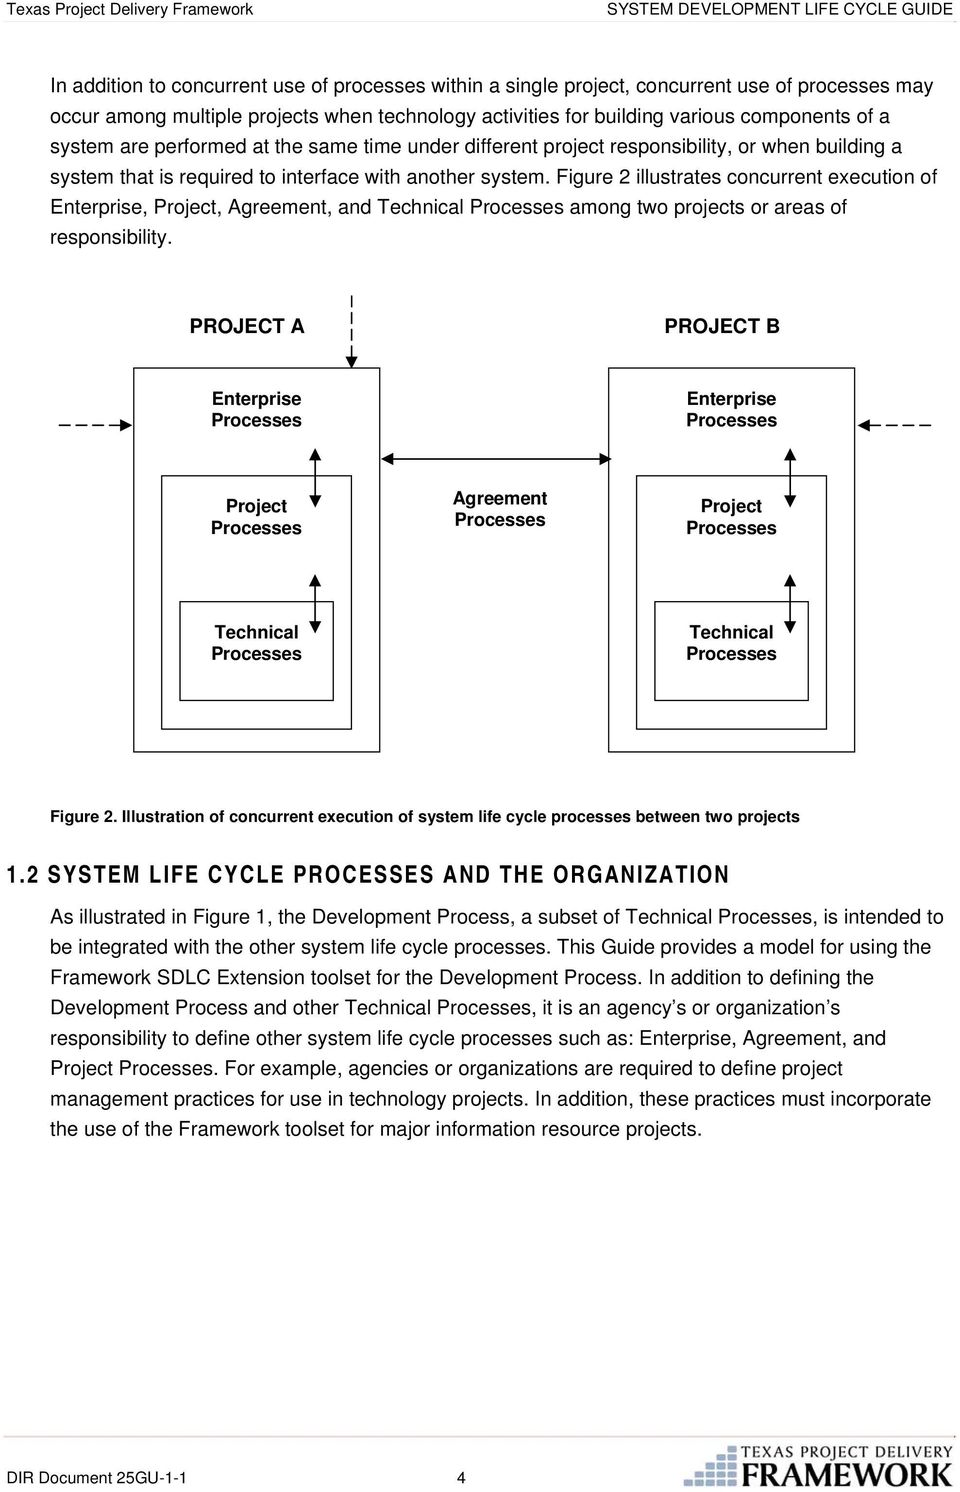 Figure 2 illustrates concurrent execution of Enterprise, Project, Agreement, and Technical Processes among two projects or areas of responsibility.